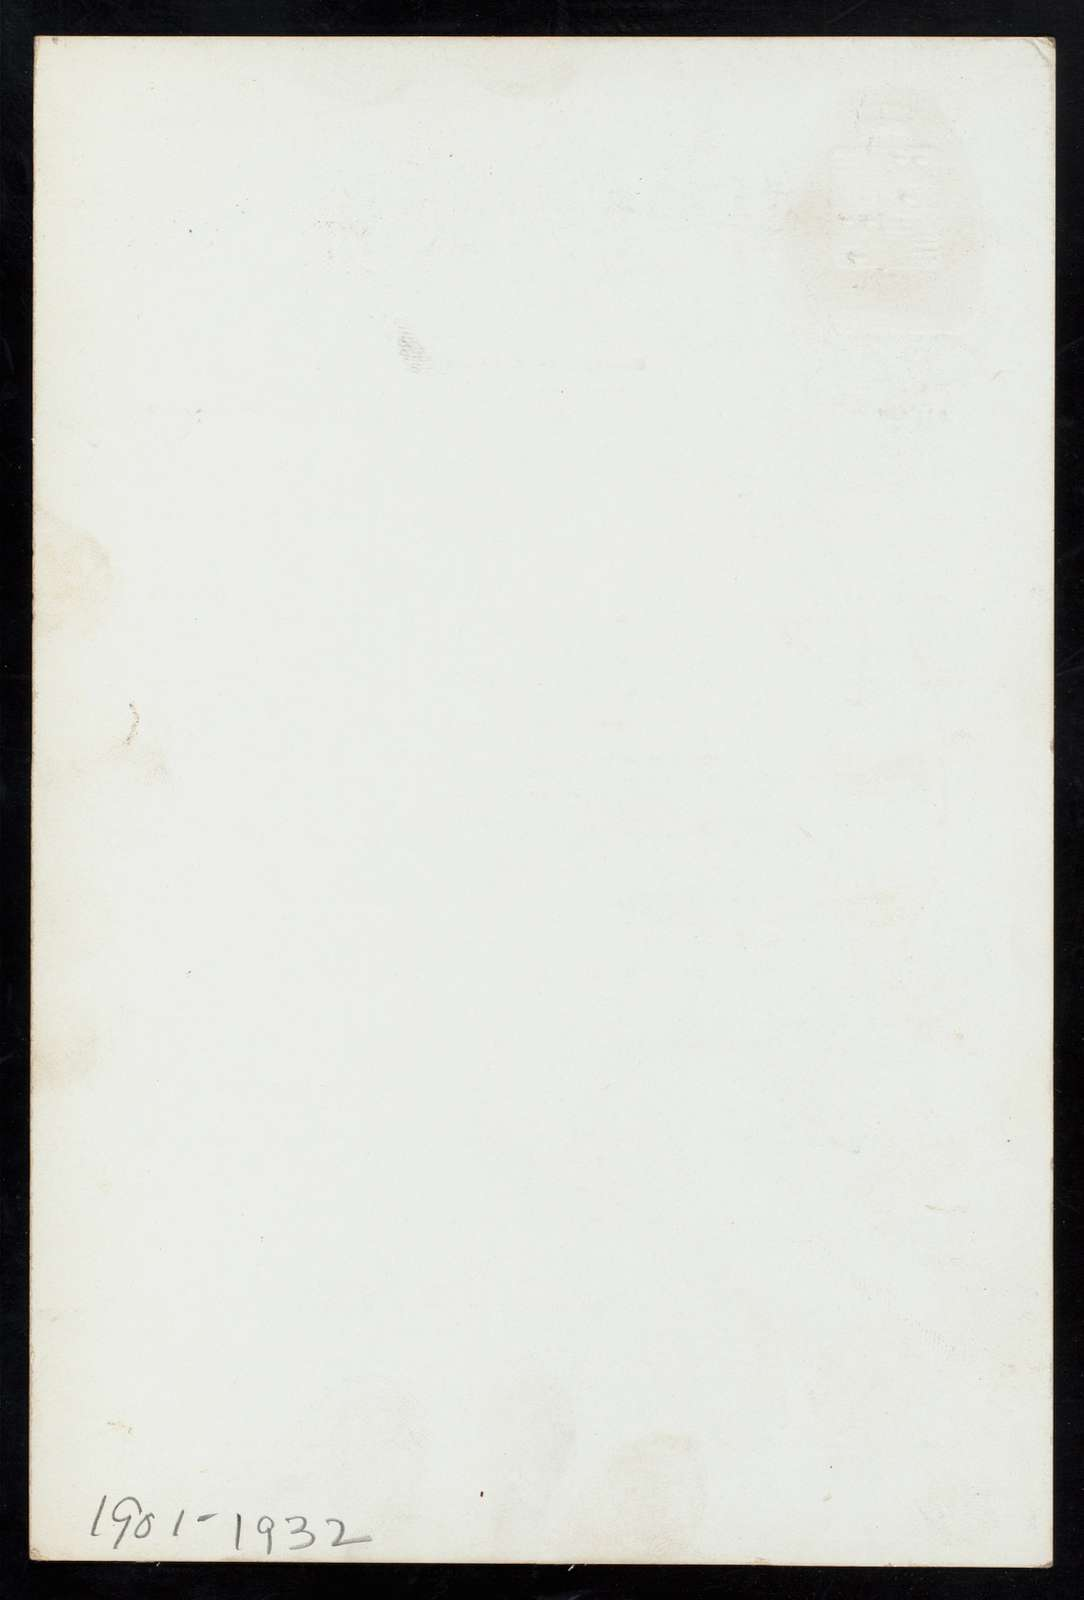 """DINNER [held by] HOTEL CADILLAC [at] """"DETROIT, MI"""" (HOTEL;)"""